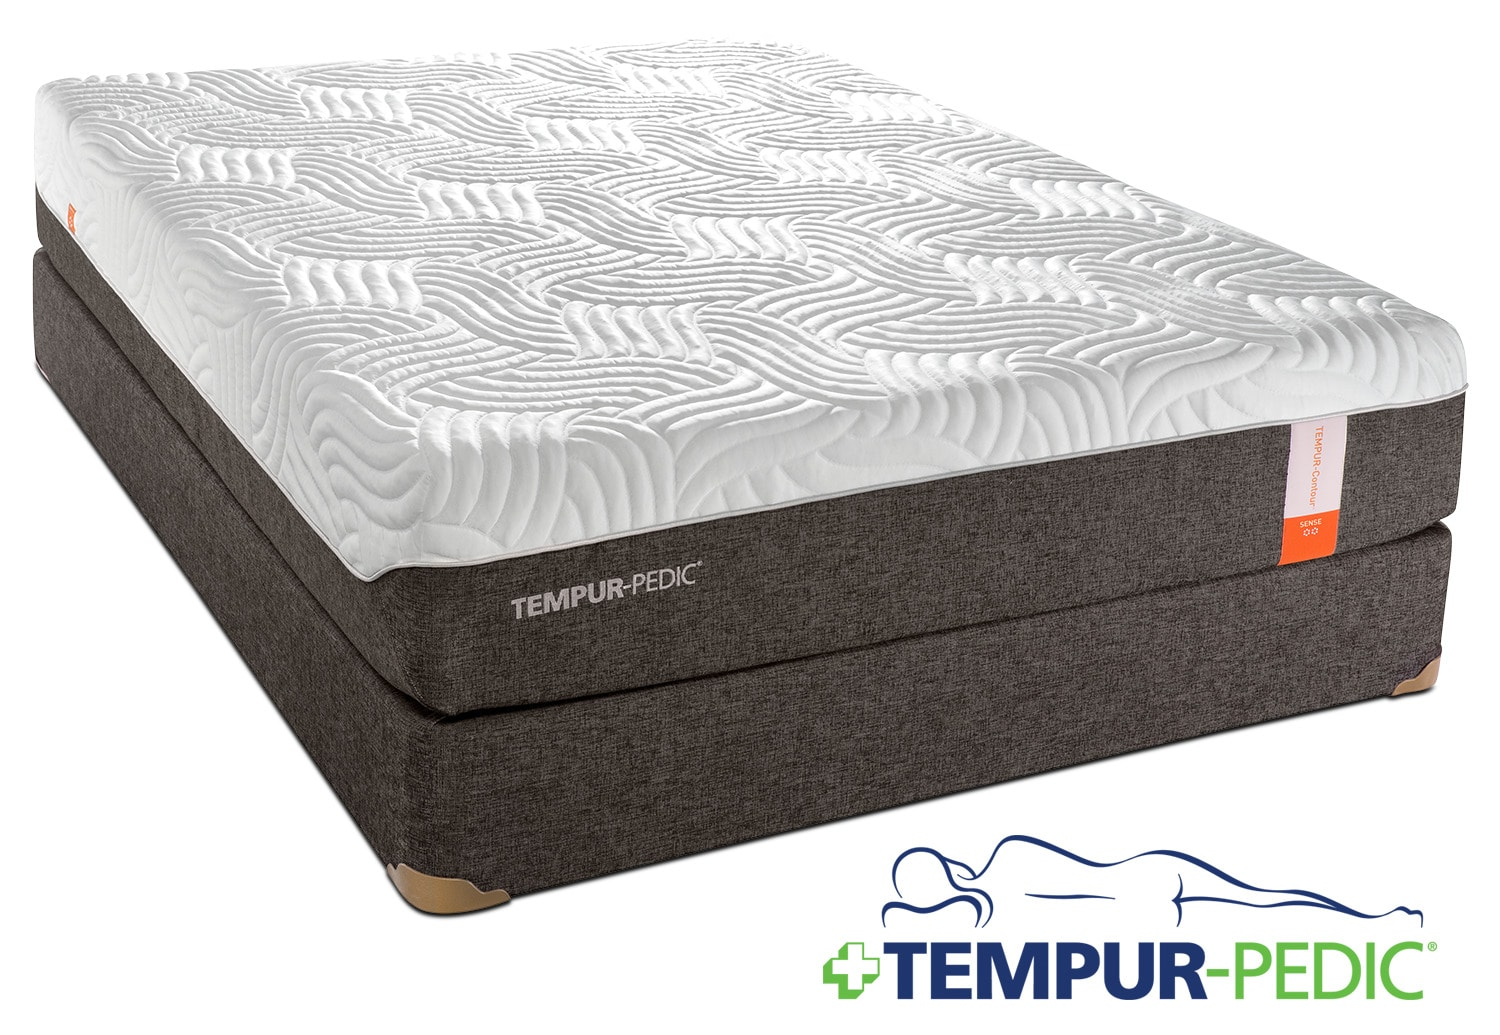 Tempur-Pedic Sense 2.0 Firm Twin Mattress and Boxspring Set